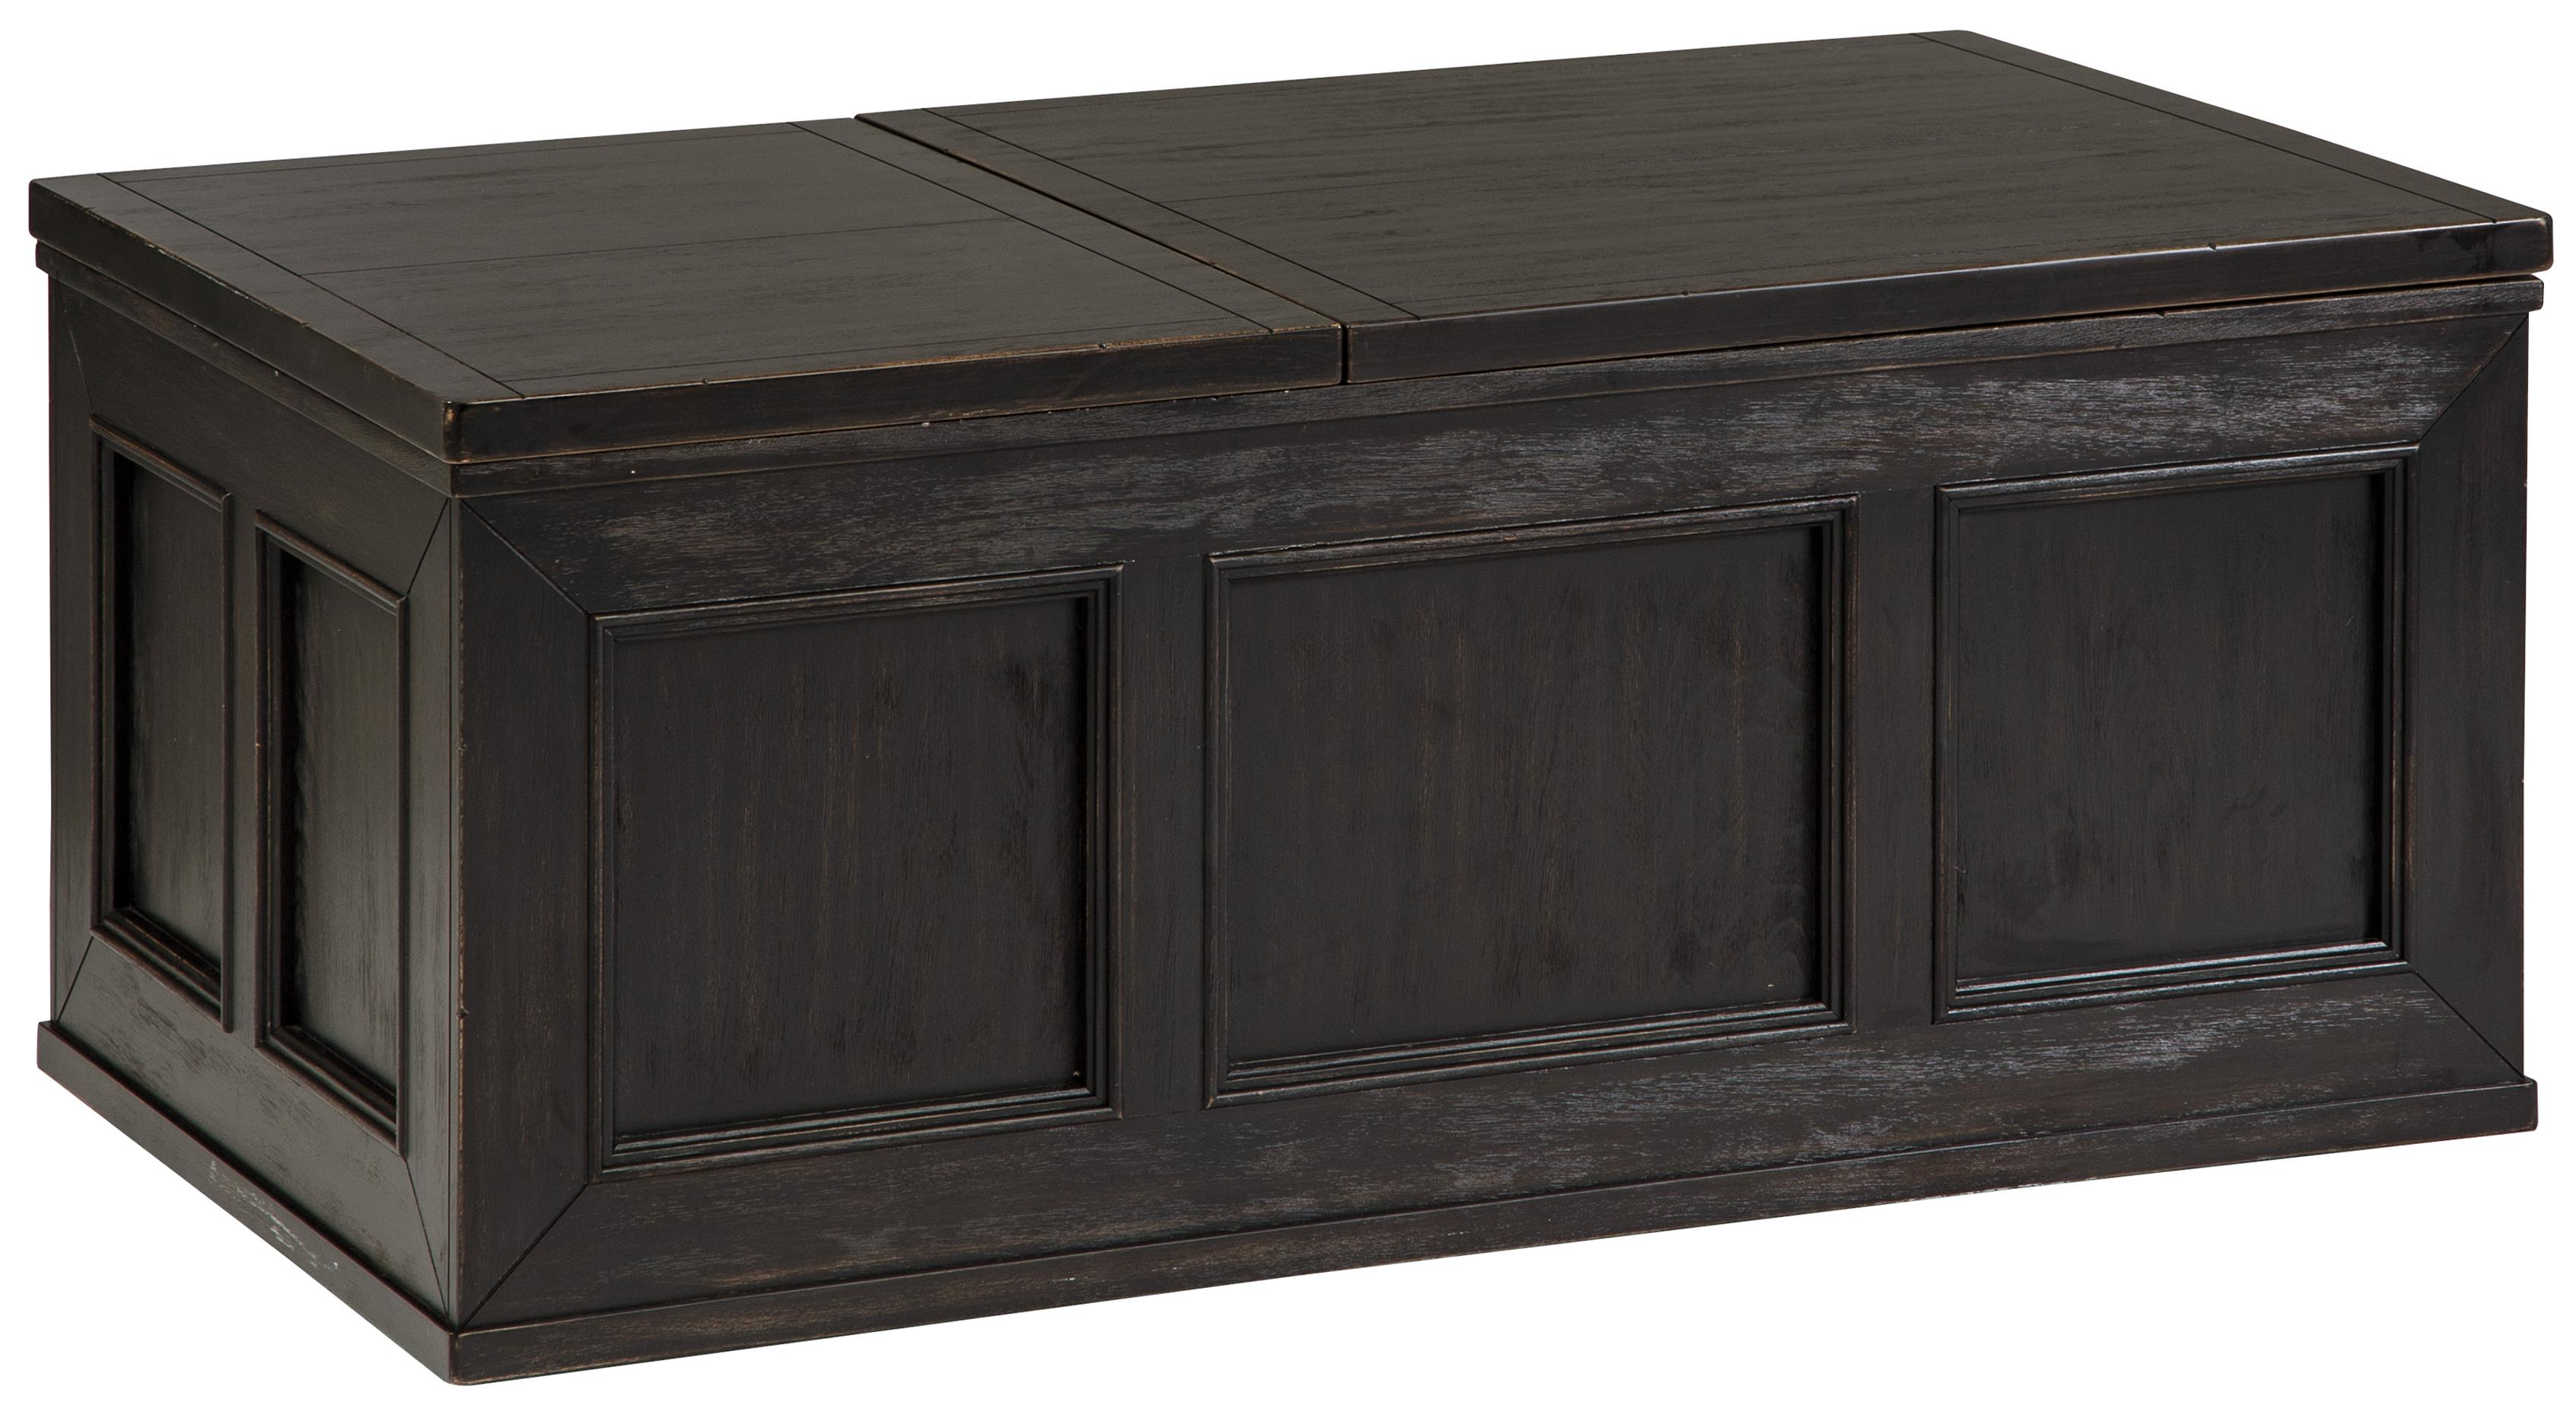 Rustic Distressed Black Trunk Style Lift Top Cocktail Table W Casters By Signature Design By